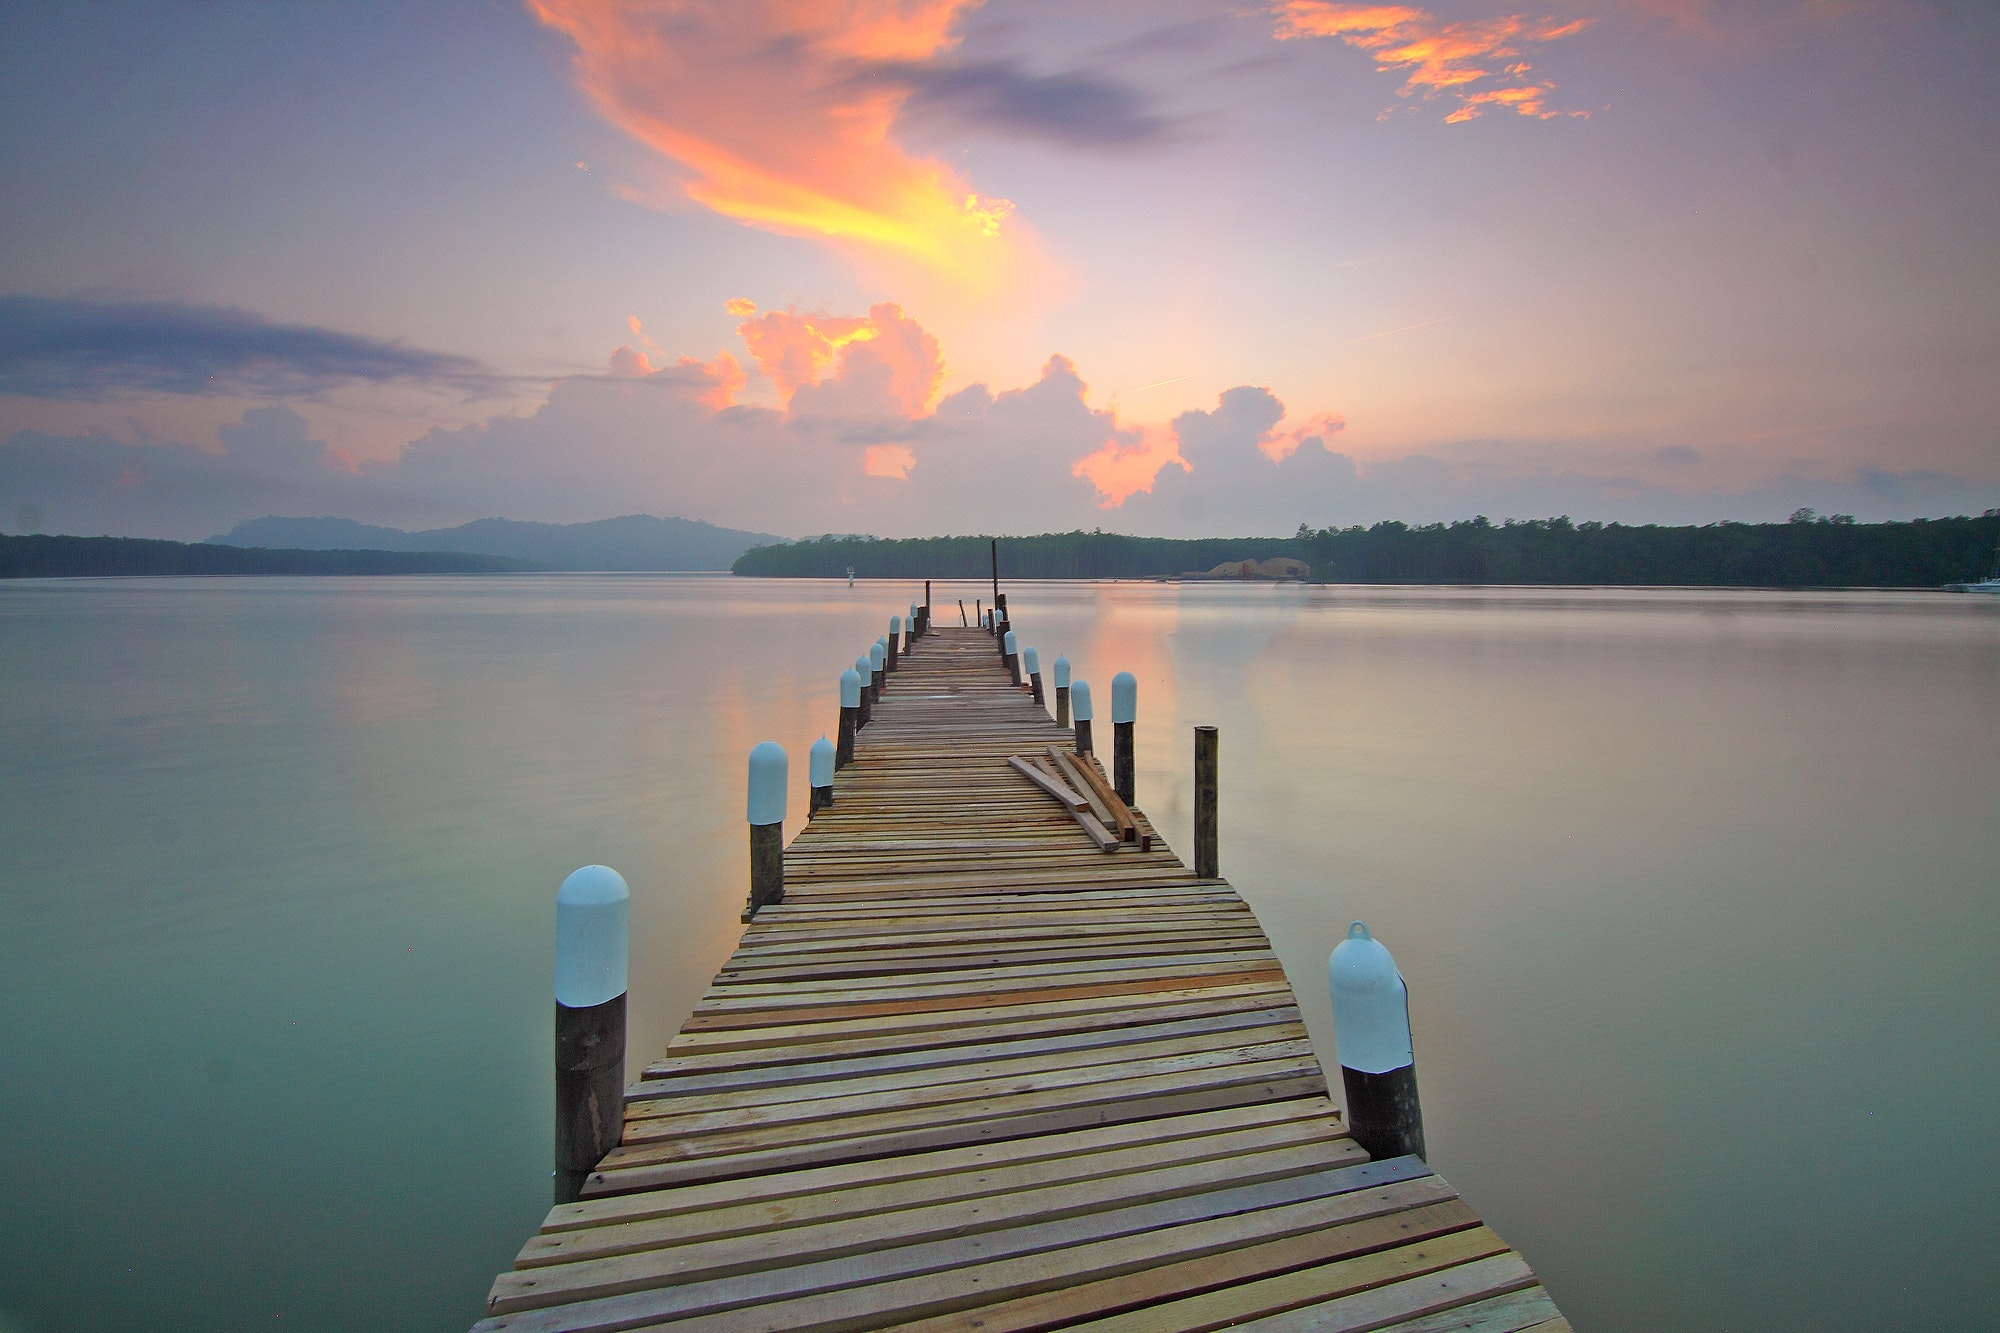 Brown wooden footbridge on body of water during sunrise photo